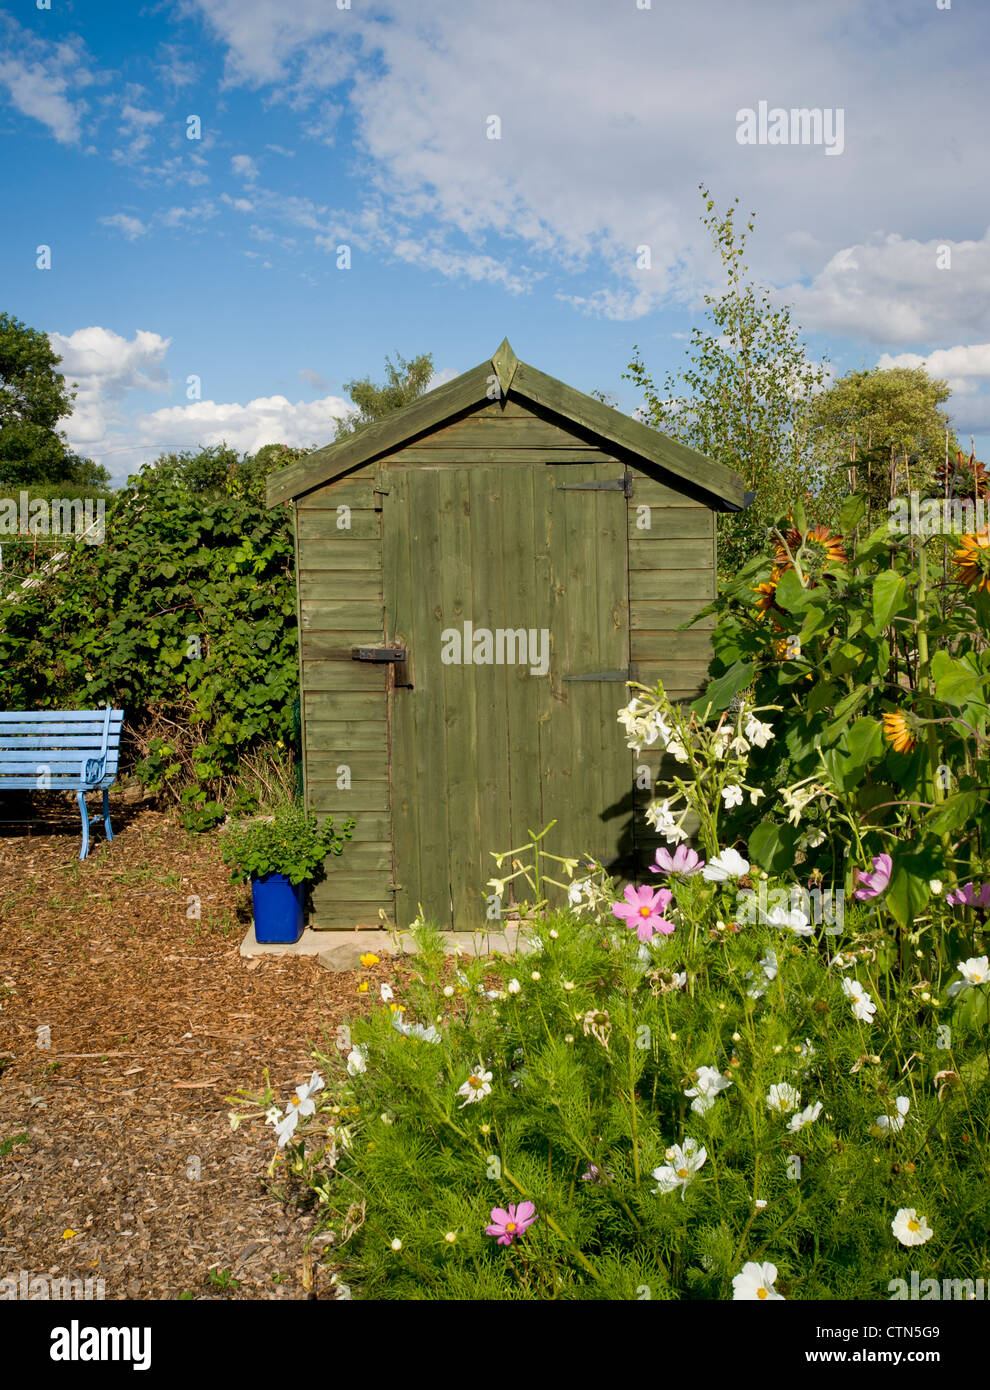 Shed on an allotment. - Stock Image